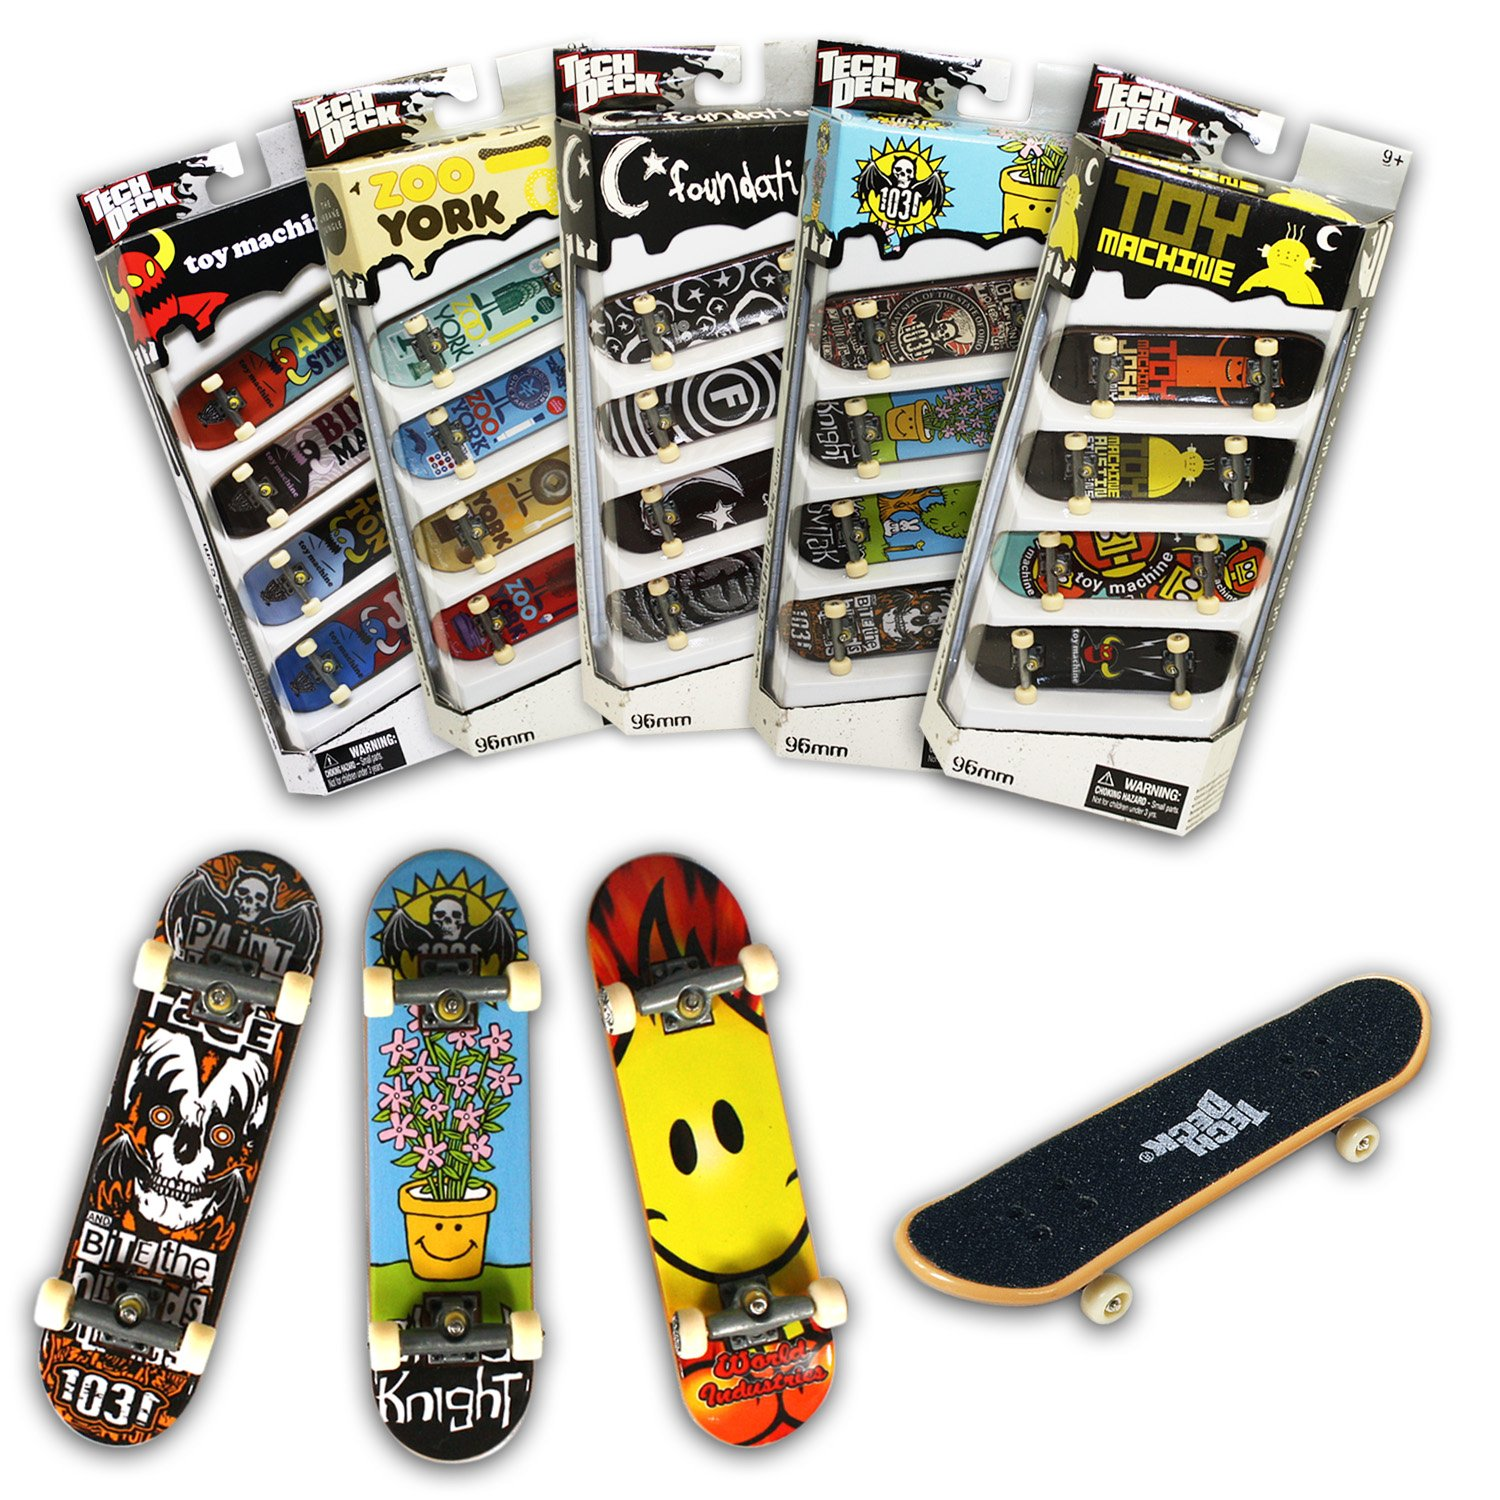 Tech Deck 96MM Fingerboards 4 Pack (Styles vary) by Spin Master